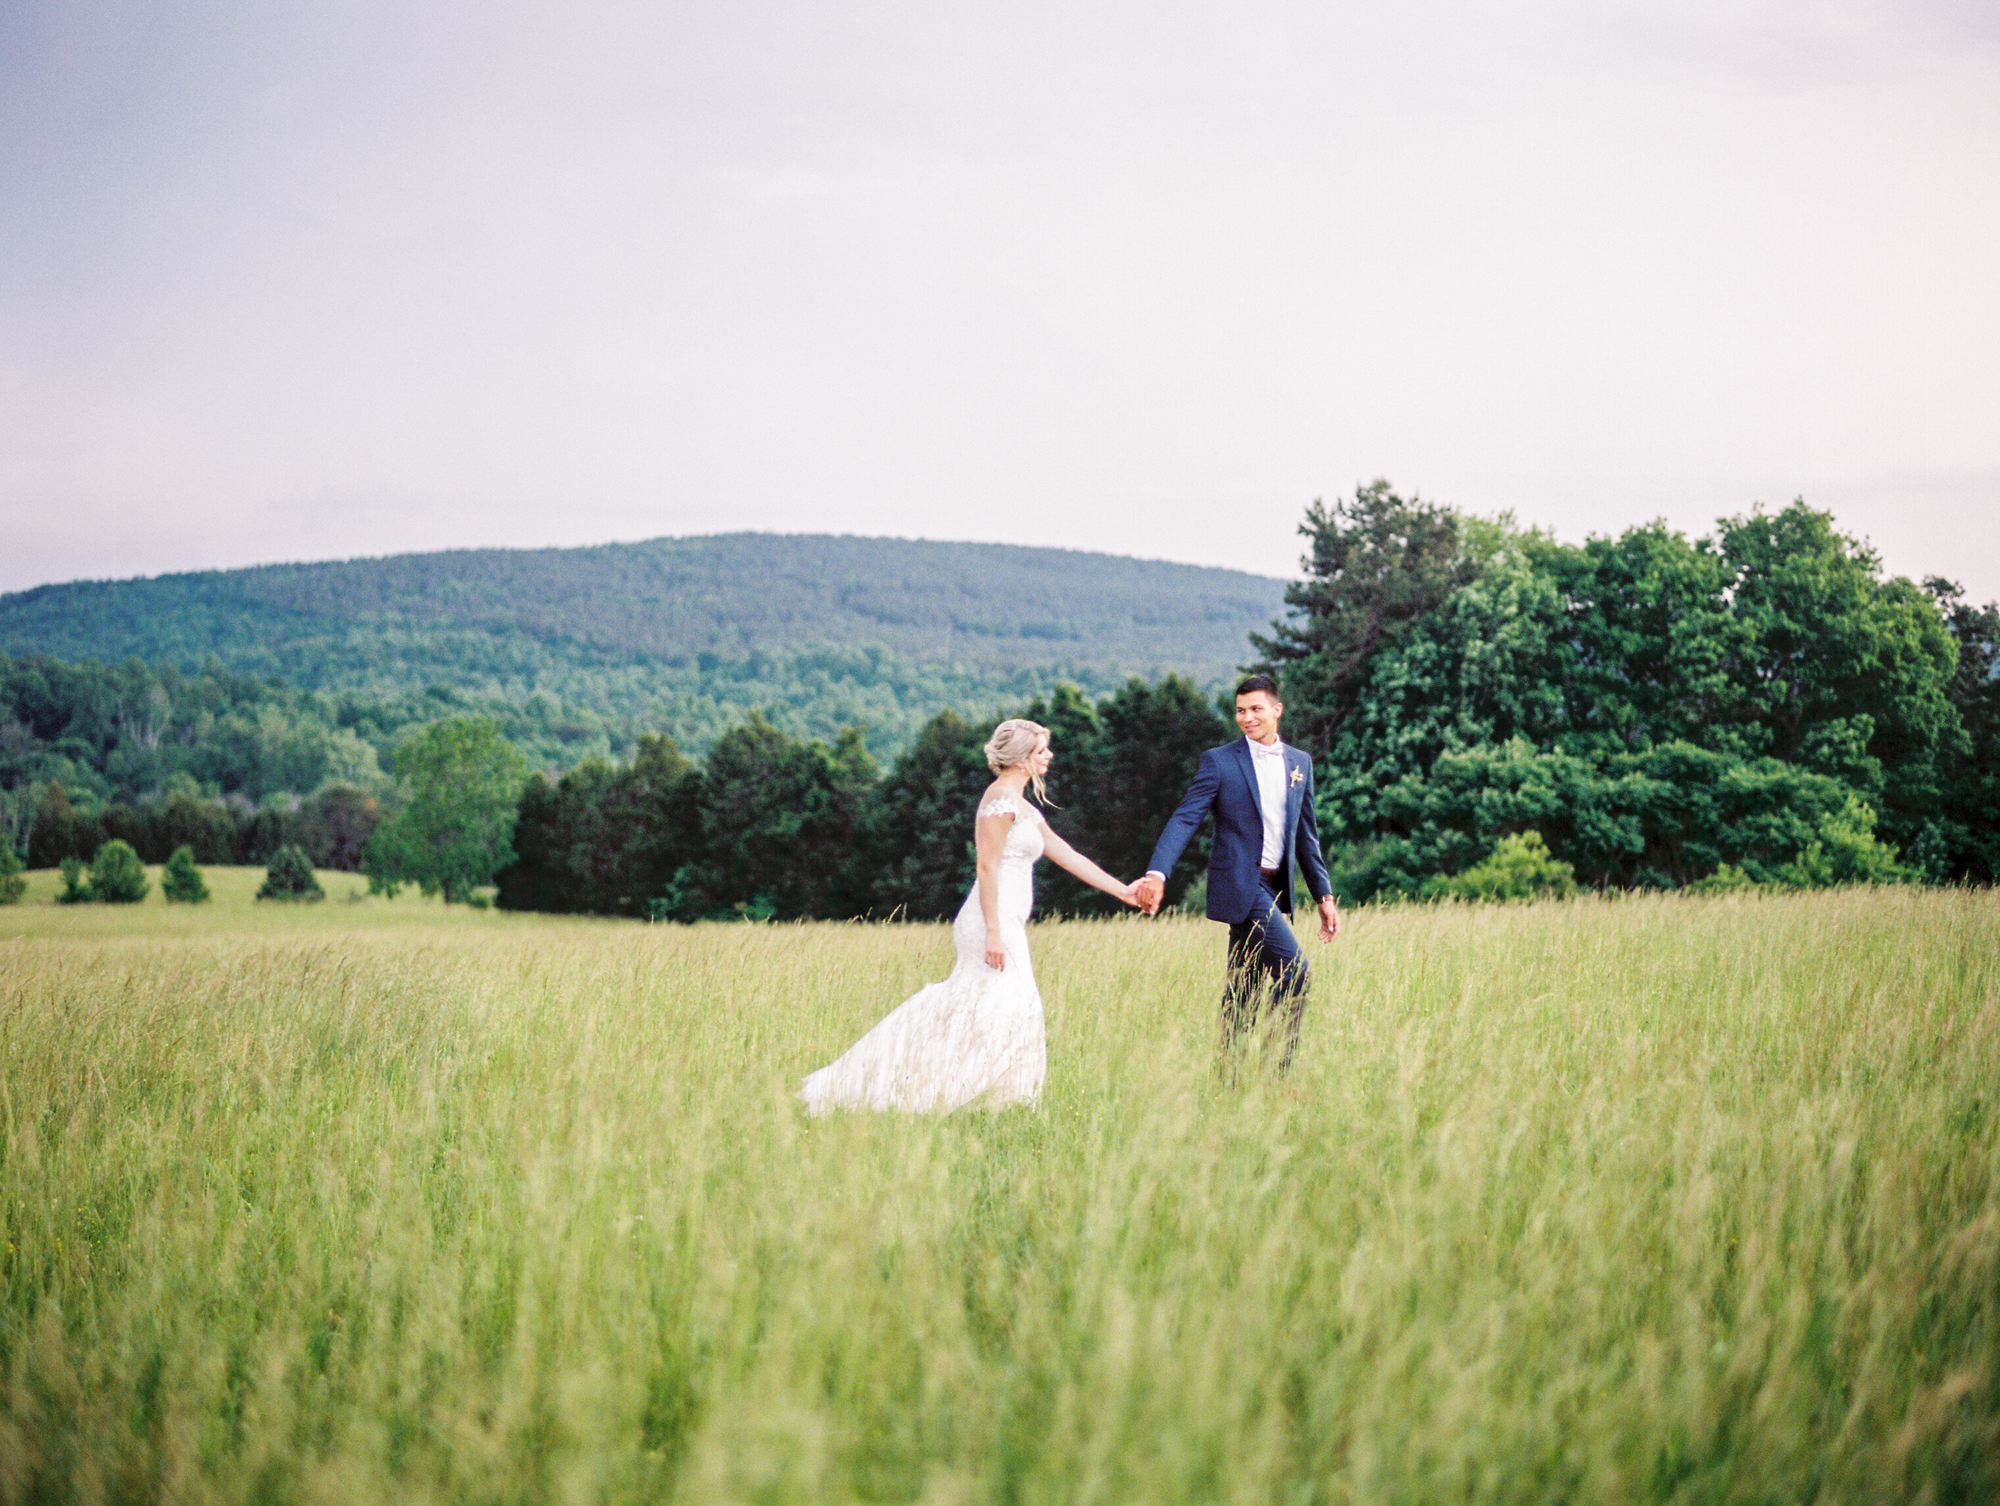 Sorella-farms-barn-wedding-venue-lynchburg-film-photographer-64.jpg